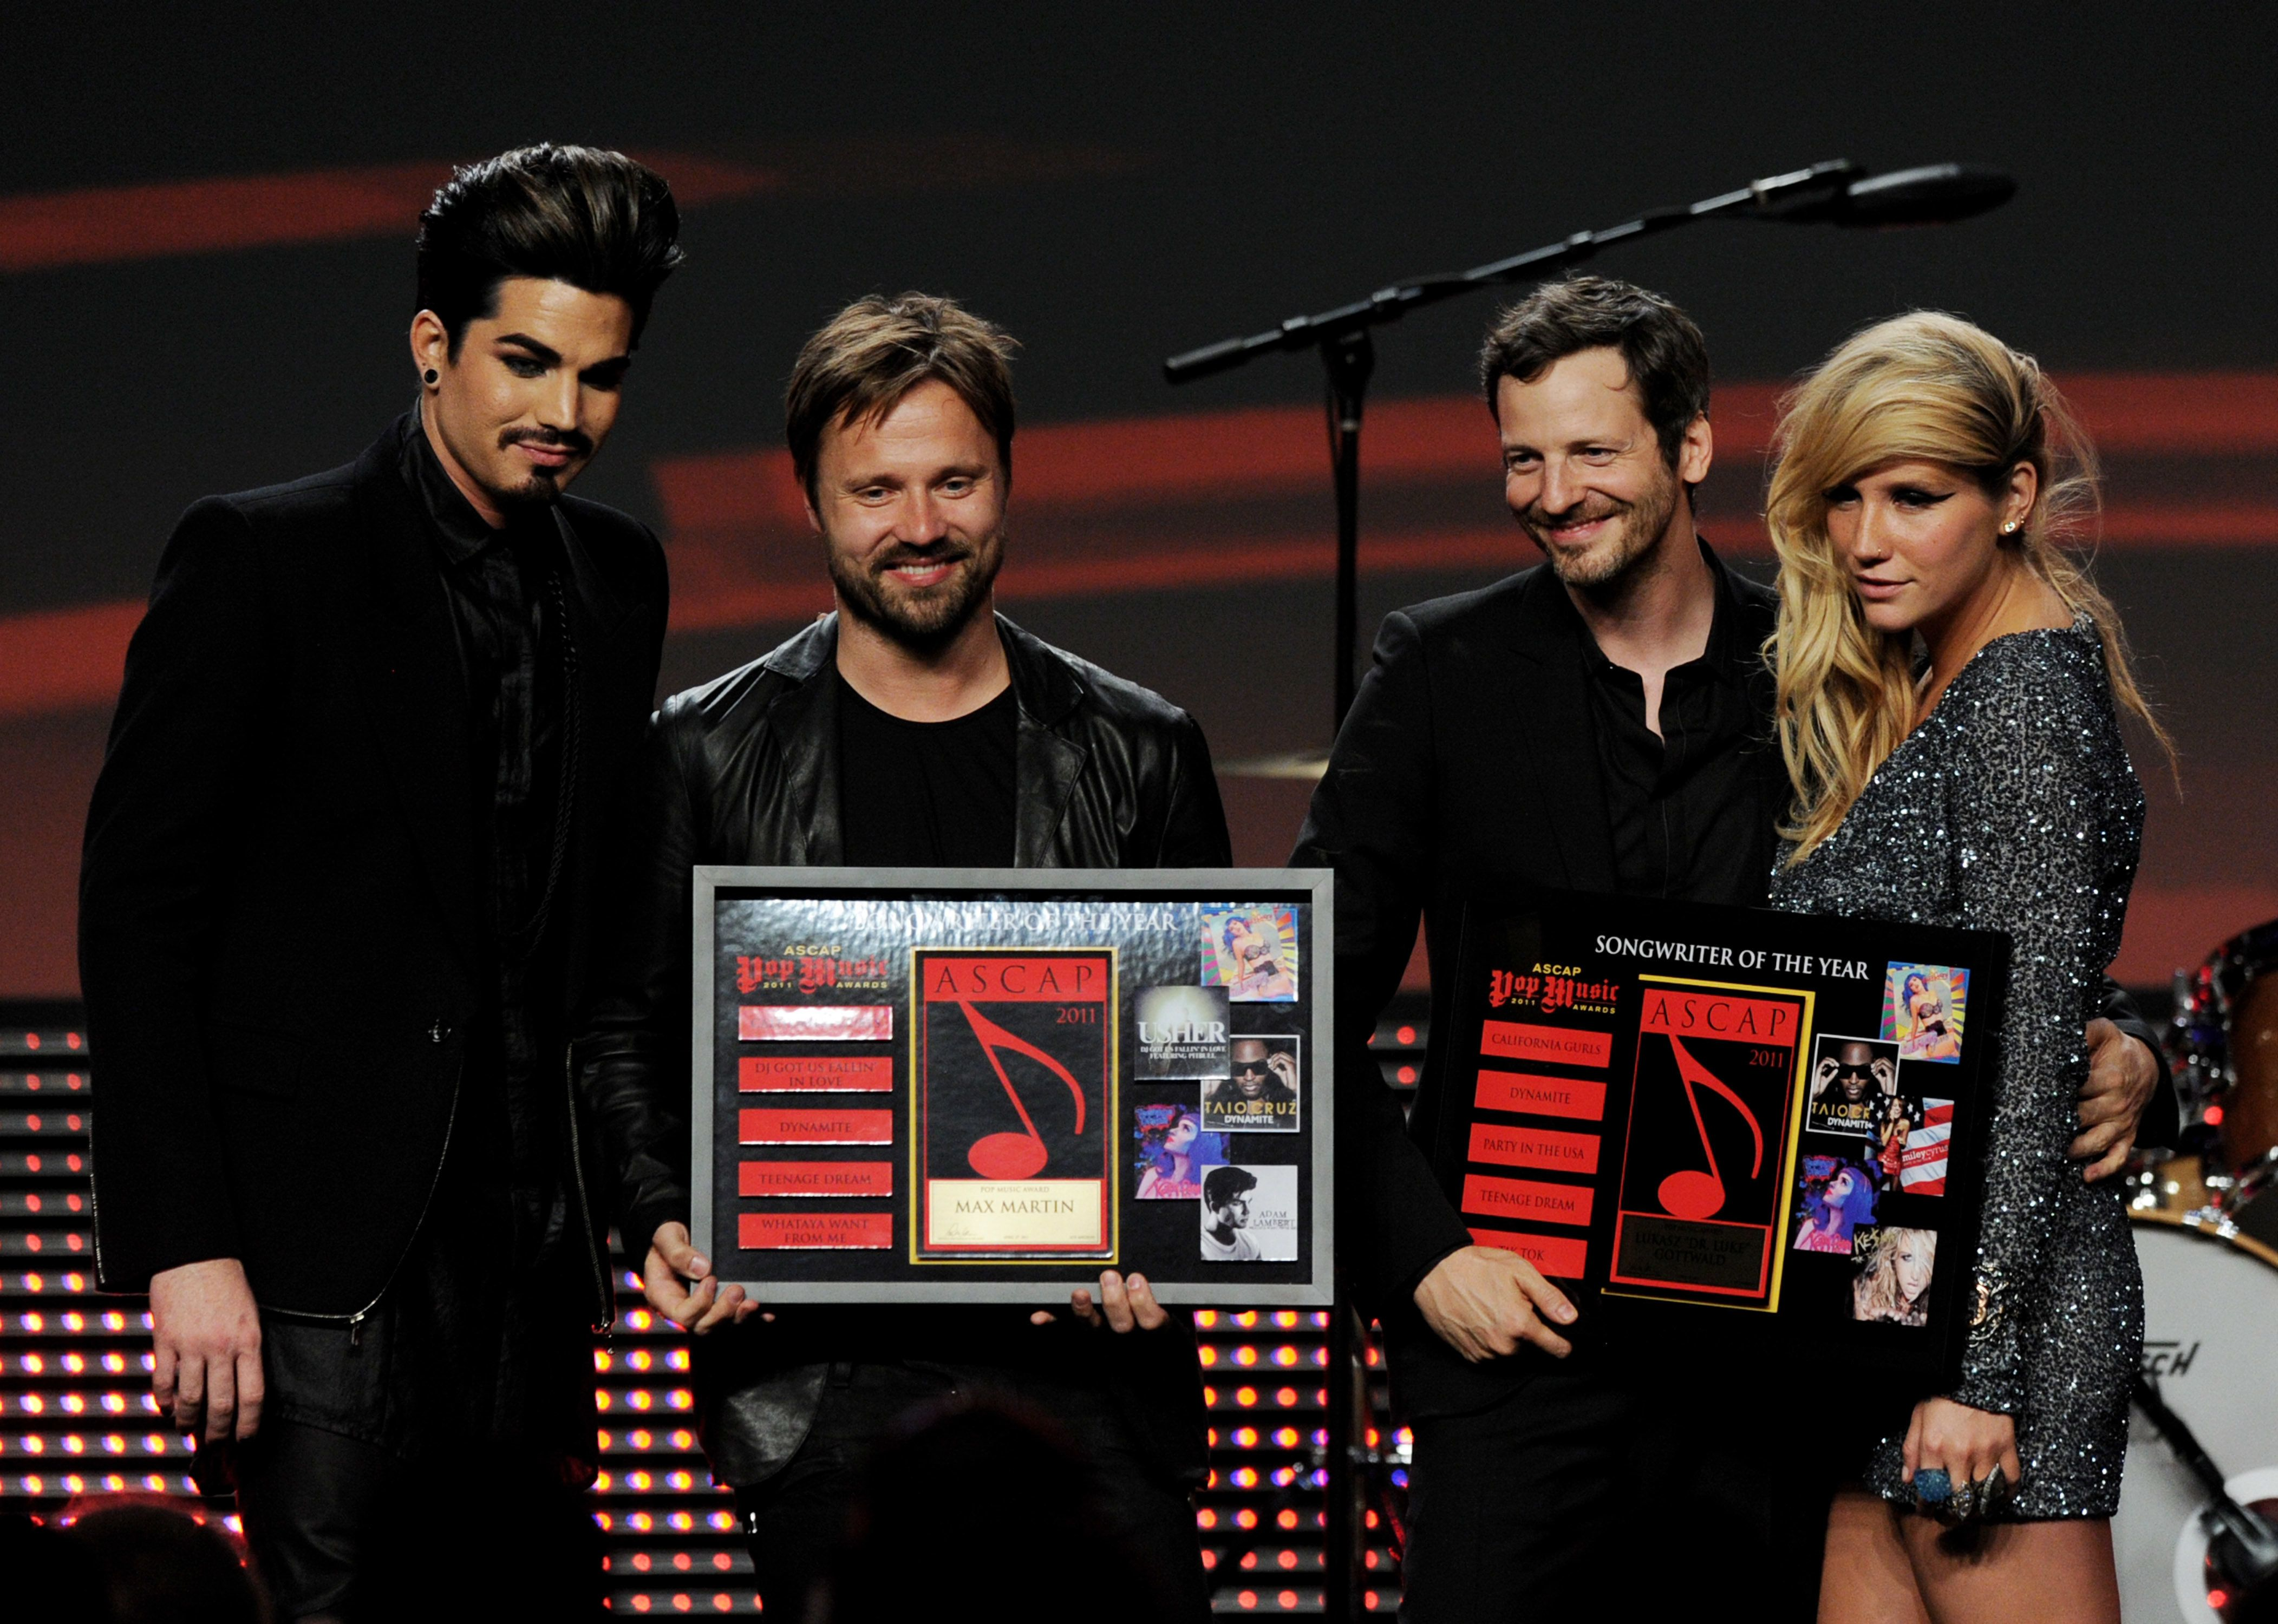 LOS ANGELES, CA - APRIL 27:  (L-R) Singer Adam Lambert, Songwriters of the Year Max Martin and Lukasz 'Dr. Luke Gottwald and singer Ke$ha pose onstage at the 28th Annual ASCAP Pop Music Awards at the Kodak Ballroom on April 27, 2011 in Los Angeles, California.  (Photo by Kevin Winter/Getty Images)